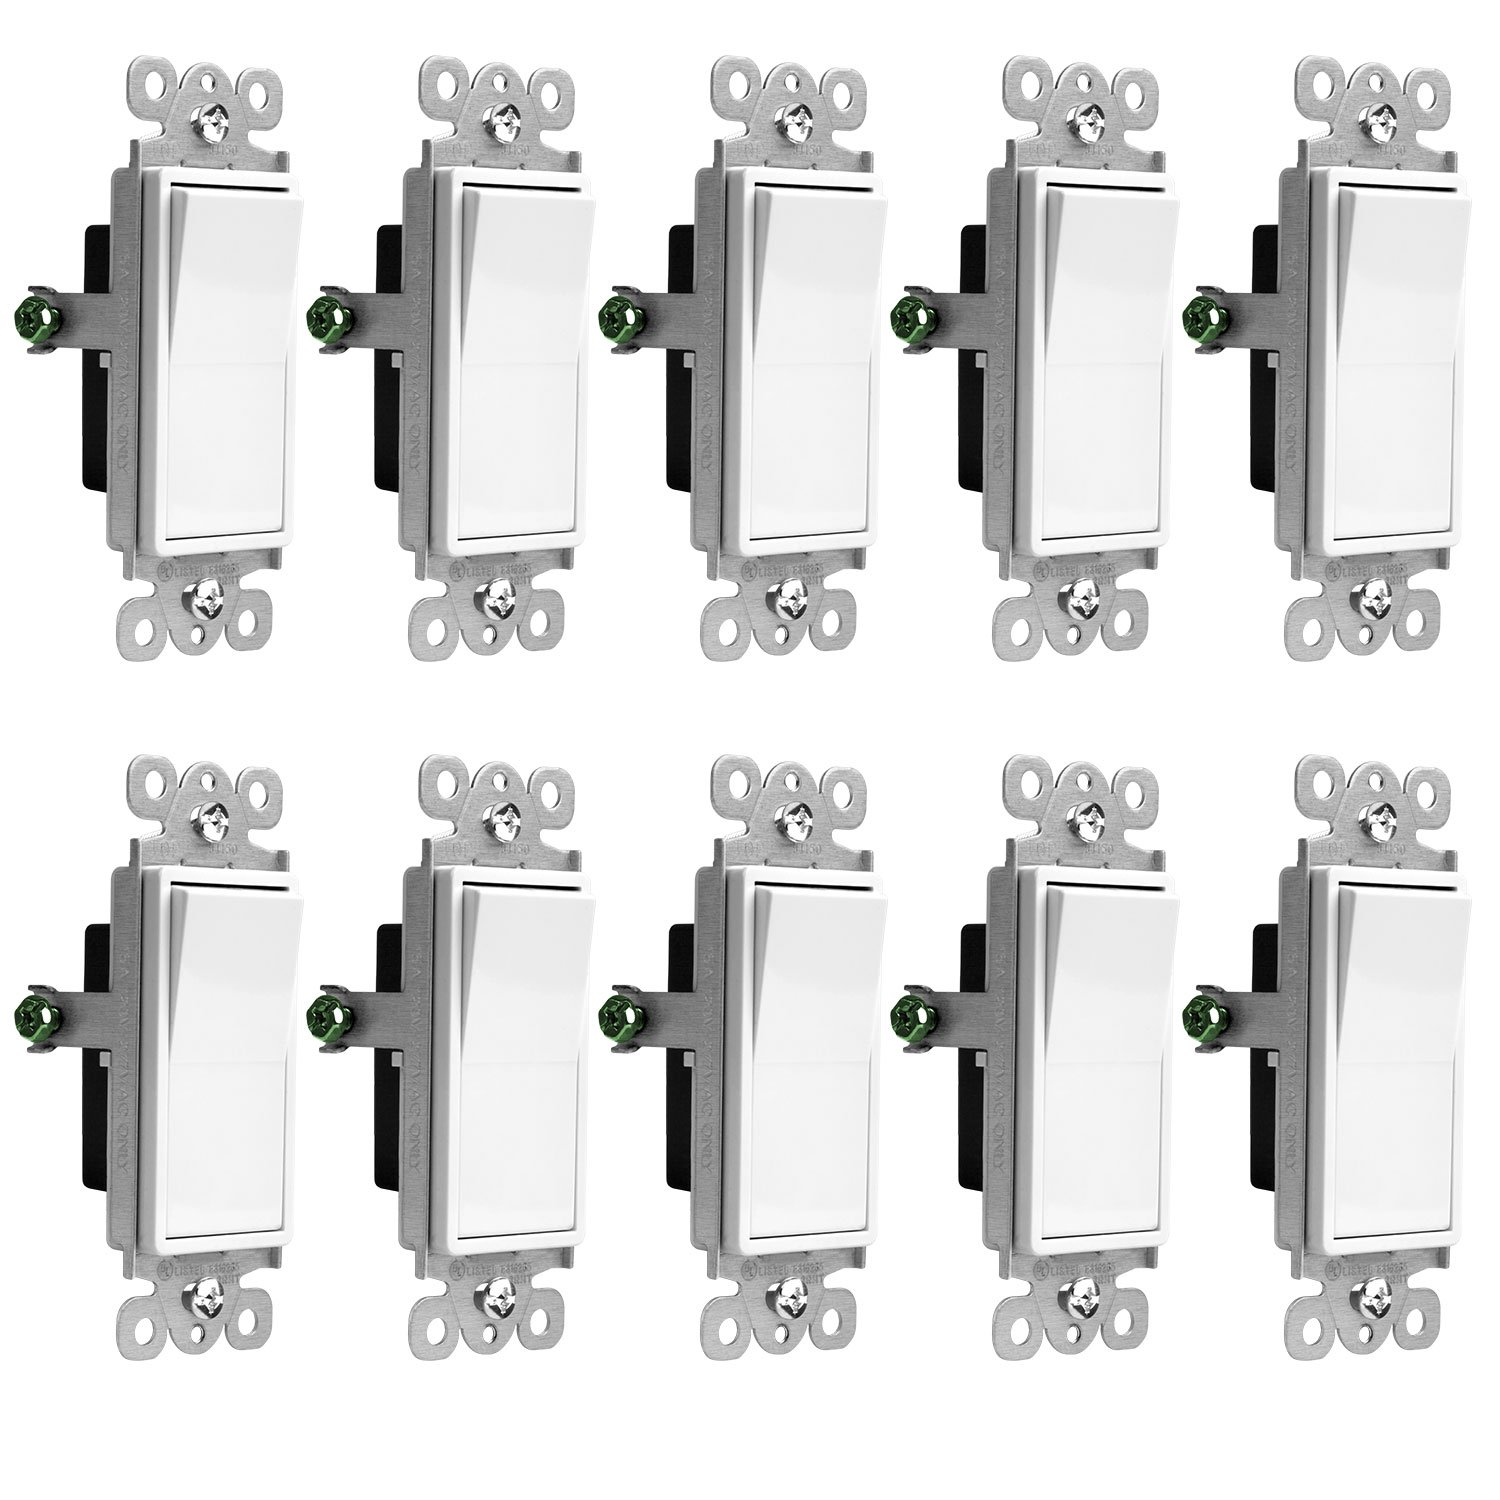 Enerlites Three Way Light Switch On Off Rocker 93150 W Wiring A 3 Single Pole 15 Amp And 120v 277v Paddle Ac Wire Grounding Screw